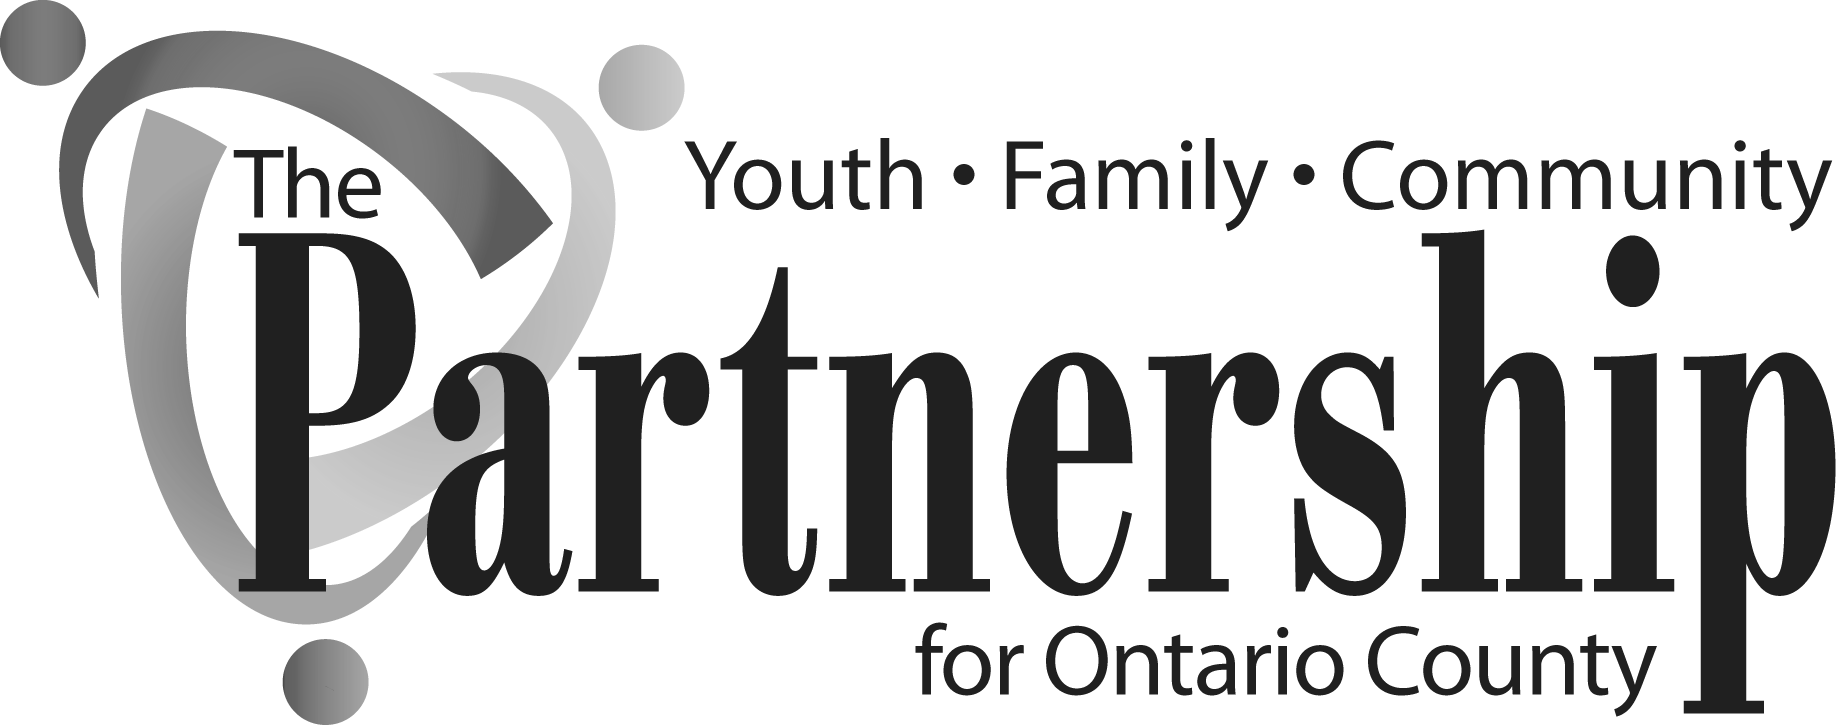 Partnership for Ontario County